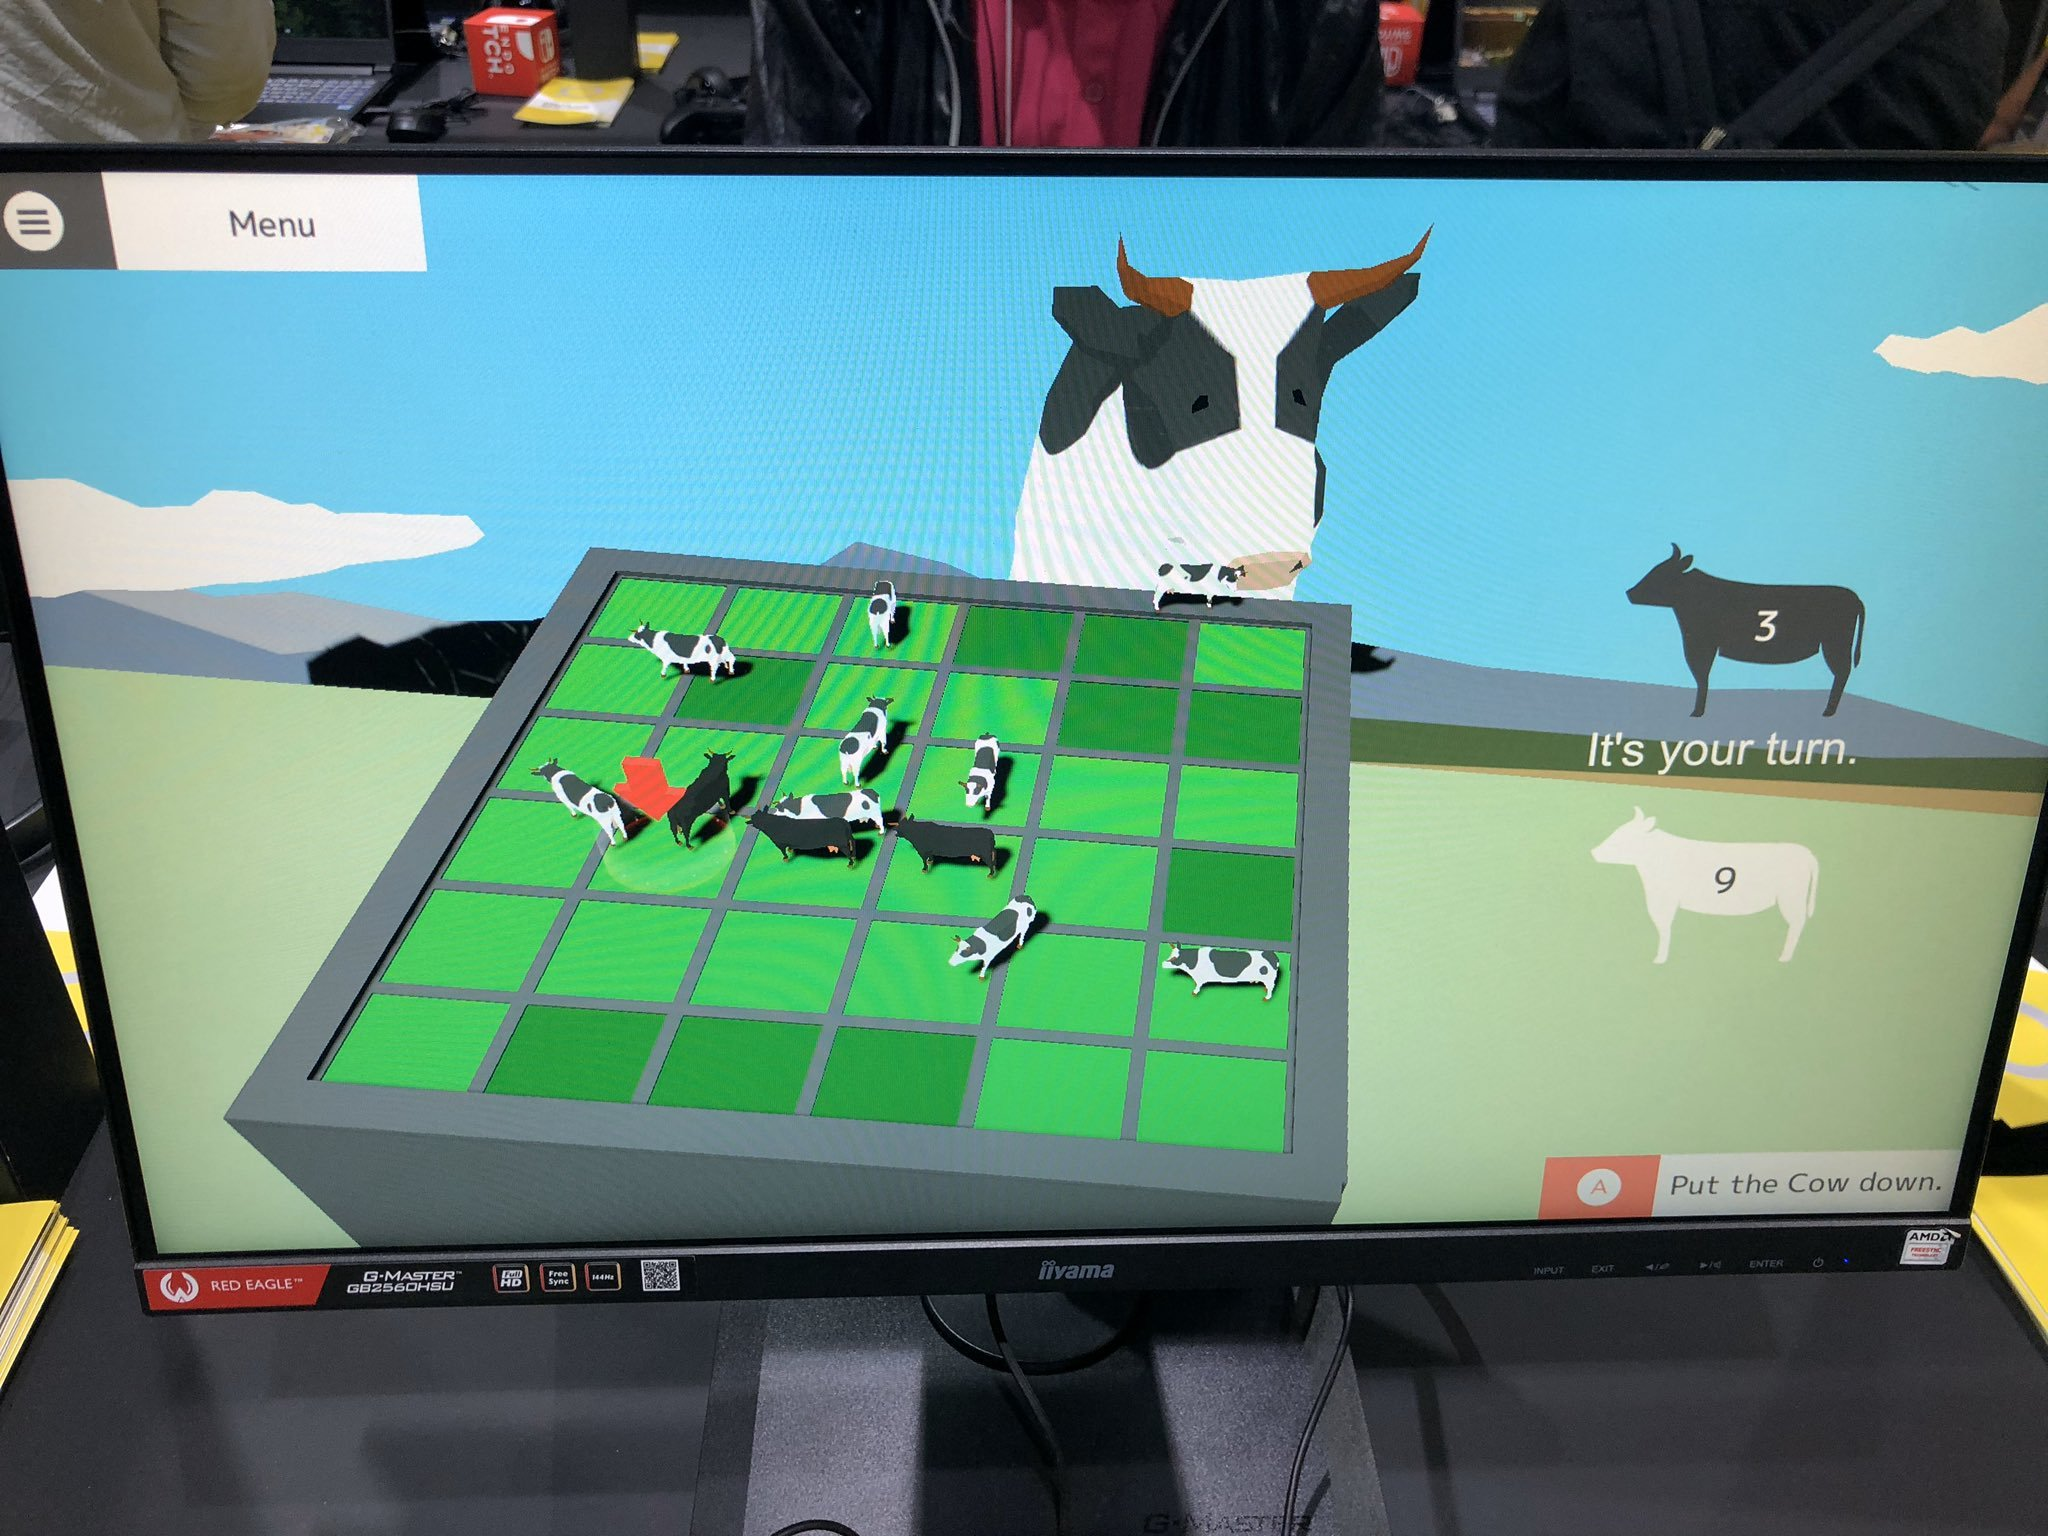 DEEEER Simulator features an odd minigame with a giant cow.